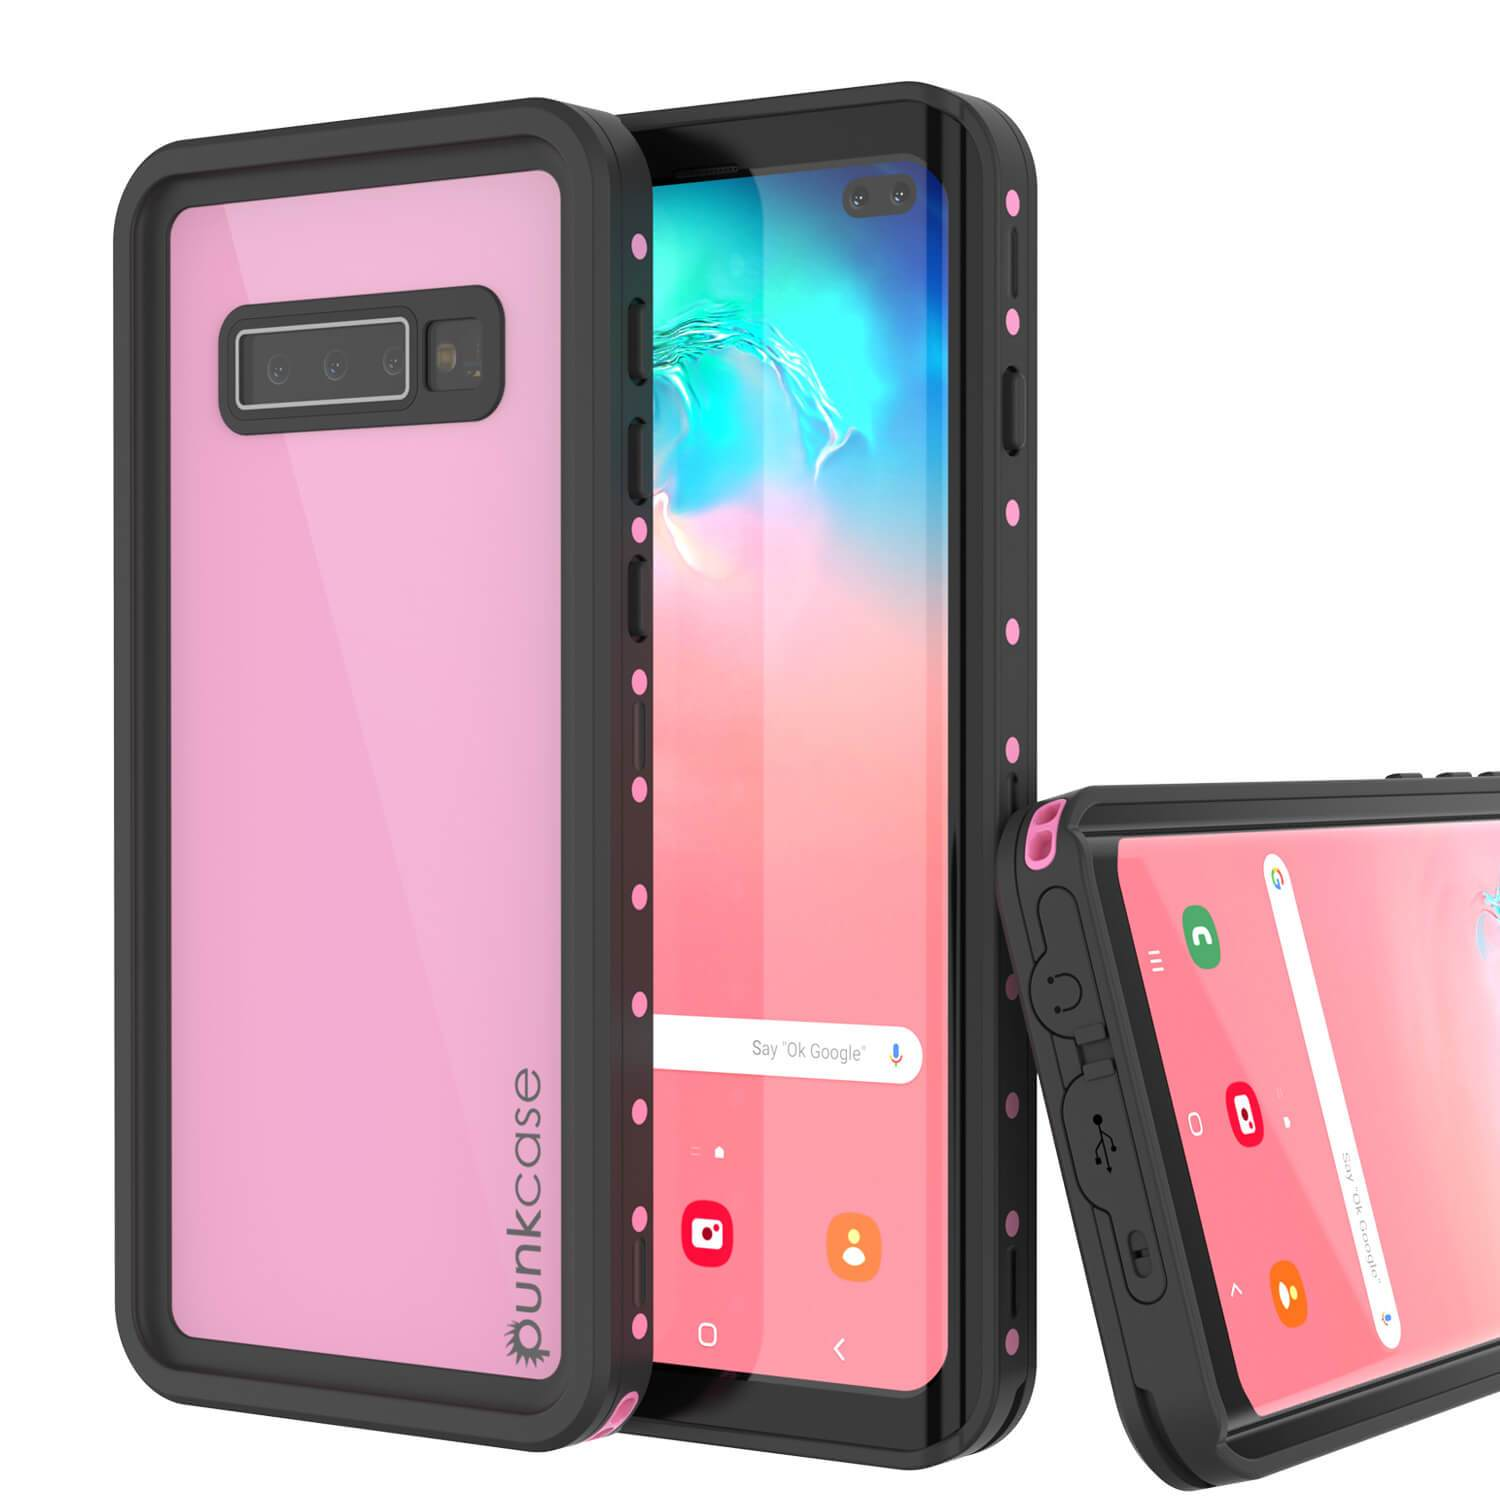 Galaxy S10+ Plus Waterproof Case PunkCase StudStar Pink Thin 6.6ft Underwater IP68 Shock/Snow Proof